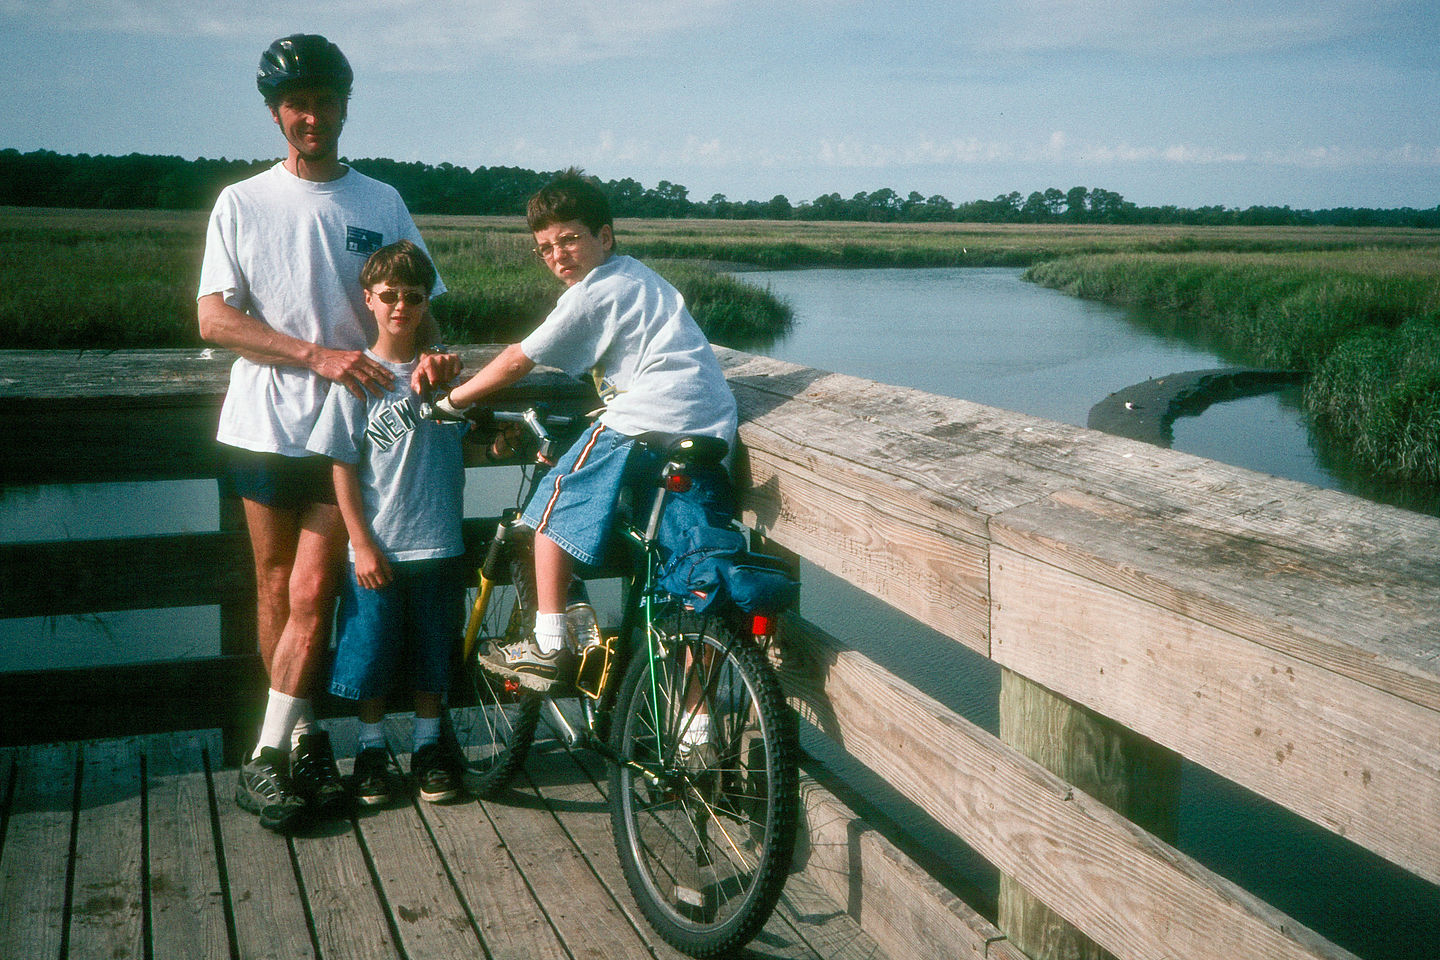 Herb with boys biking